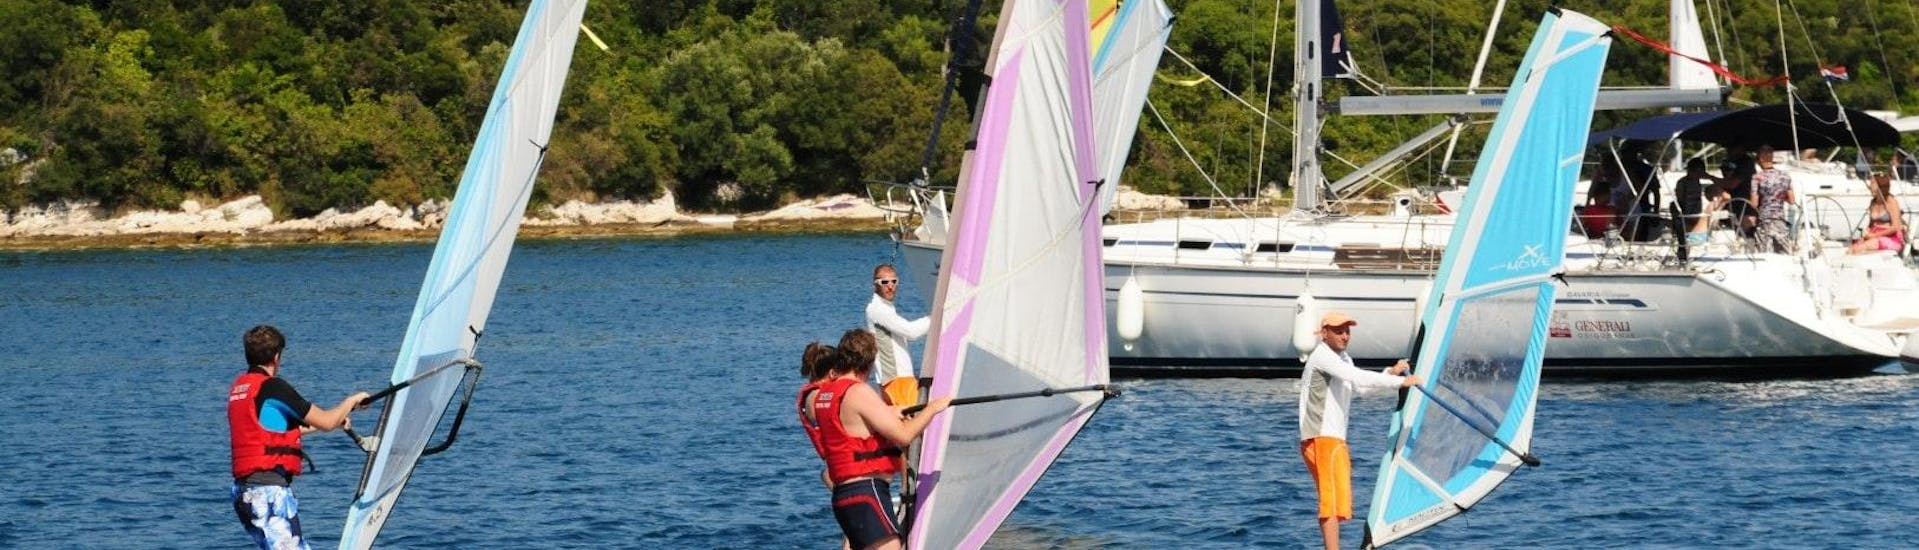 """Windsurfing """"Intro Course"""" for Kids & Adults - Beginner"""